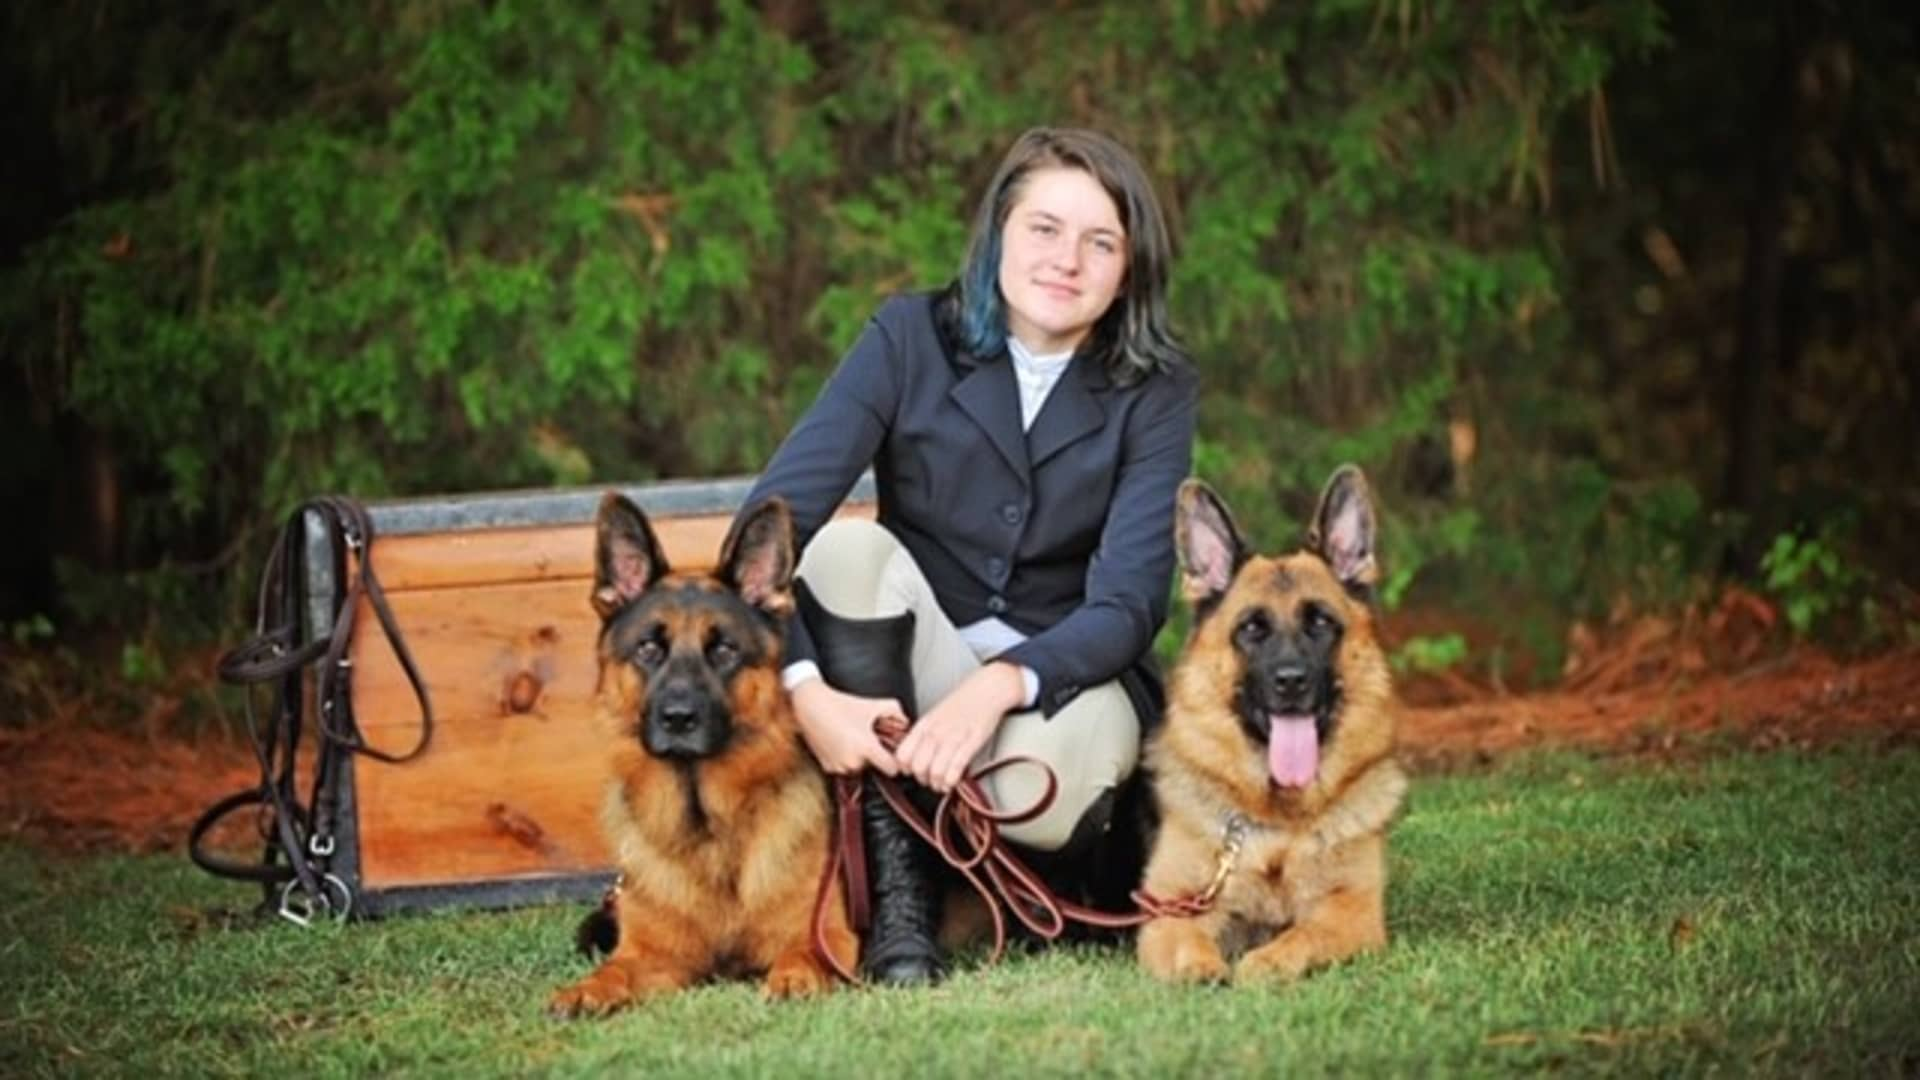 Hardy ($47,000) and Happy ($42,000) two Harrison K-9 dogs headed to Guadalajara, Mexico to protect a wealthy family.